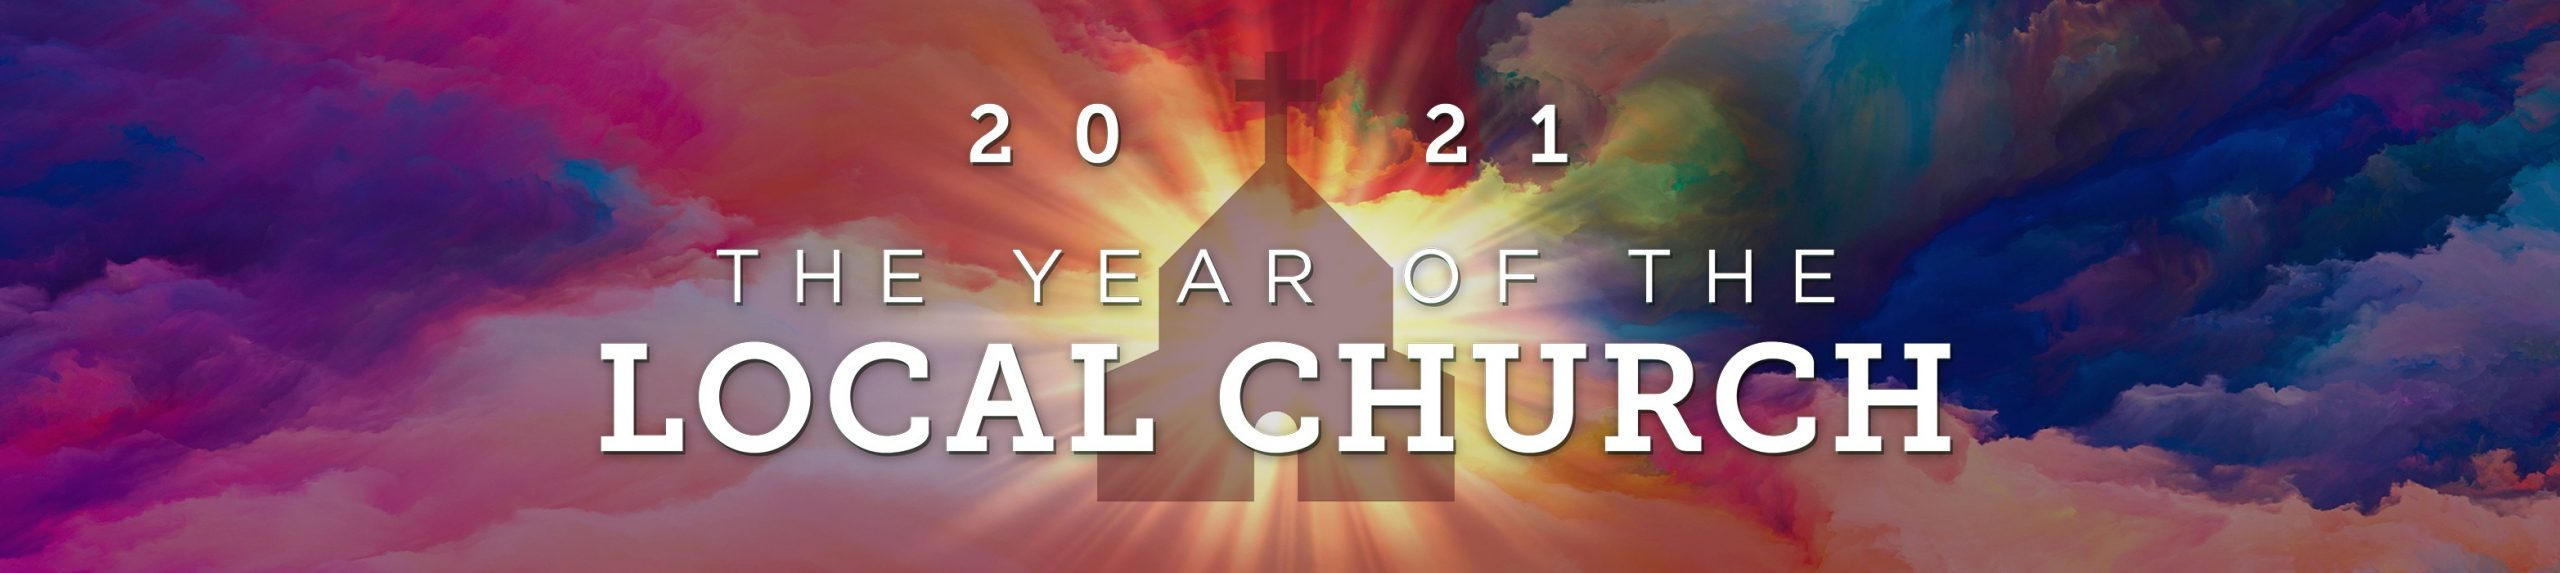 2021 Year of the Local Church Prophetic Word from Kenneth Copeland